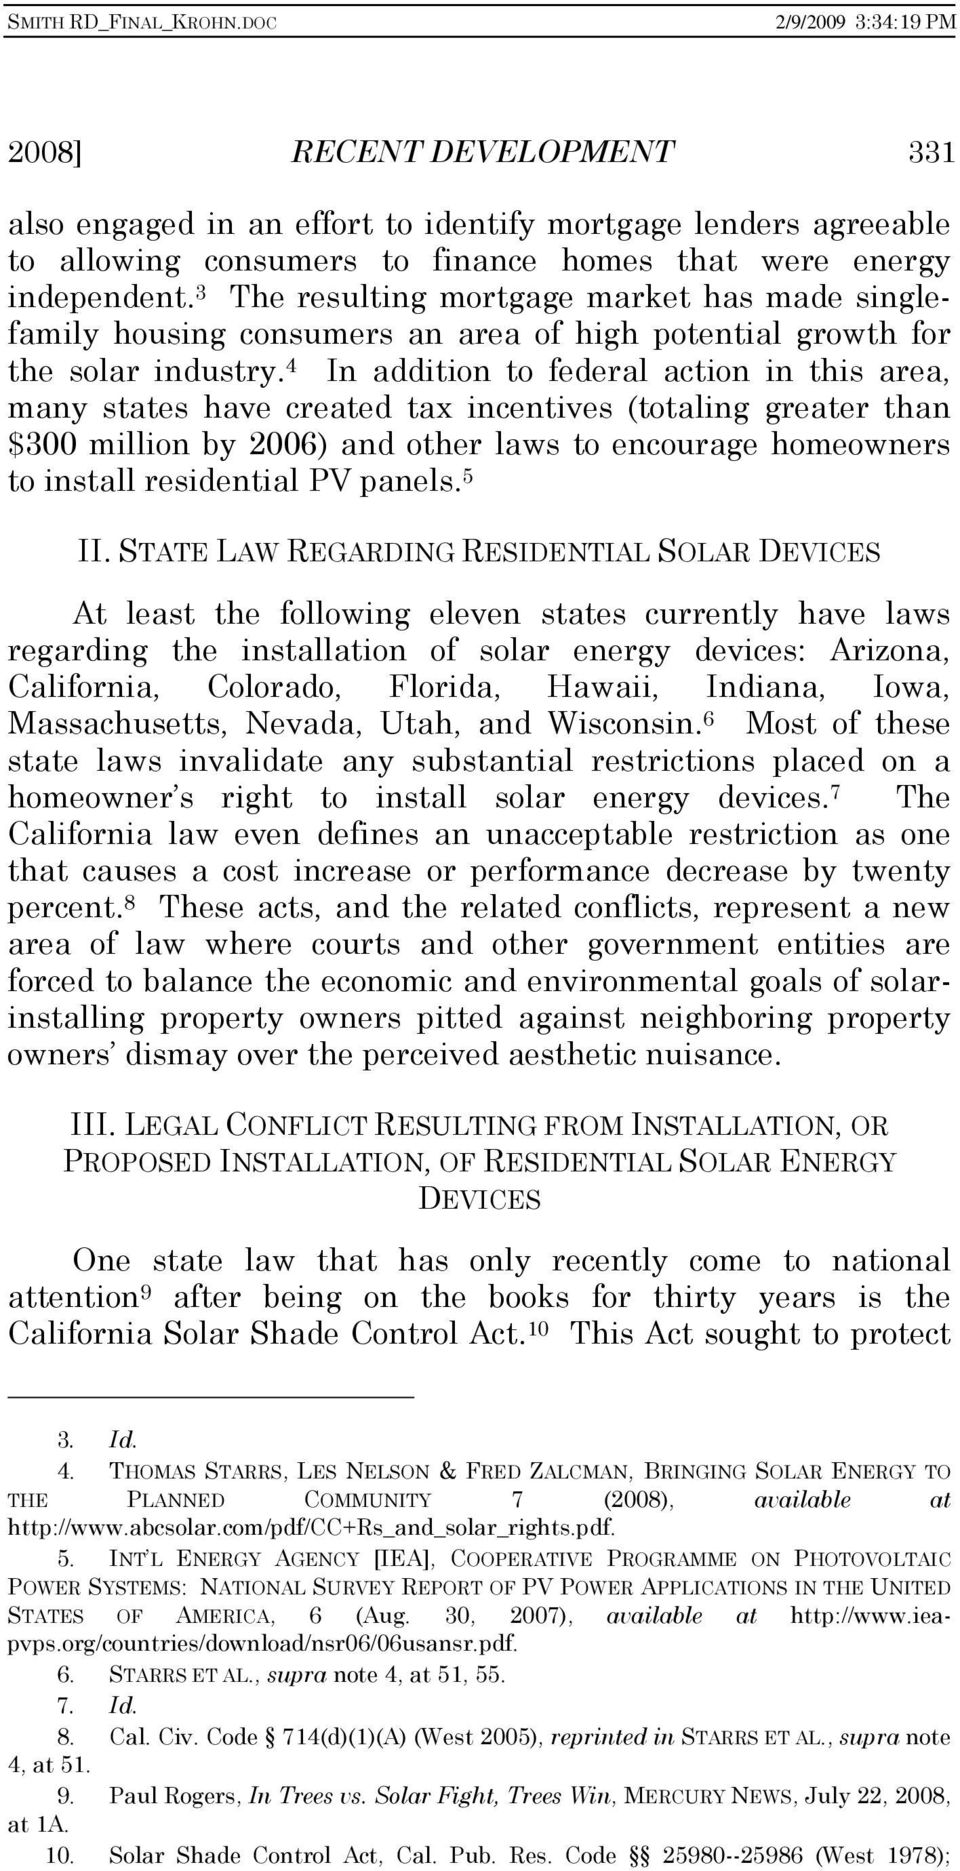 4 In addition to federal action in this area, many states have created tax incentives (totaling greater than $300 million by 2006) and other laws to encourage homeowners to install residential PV